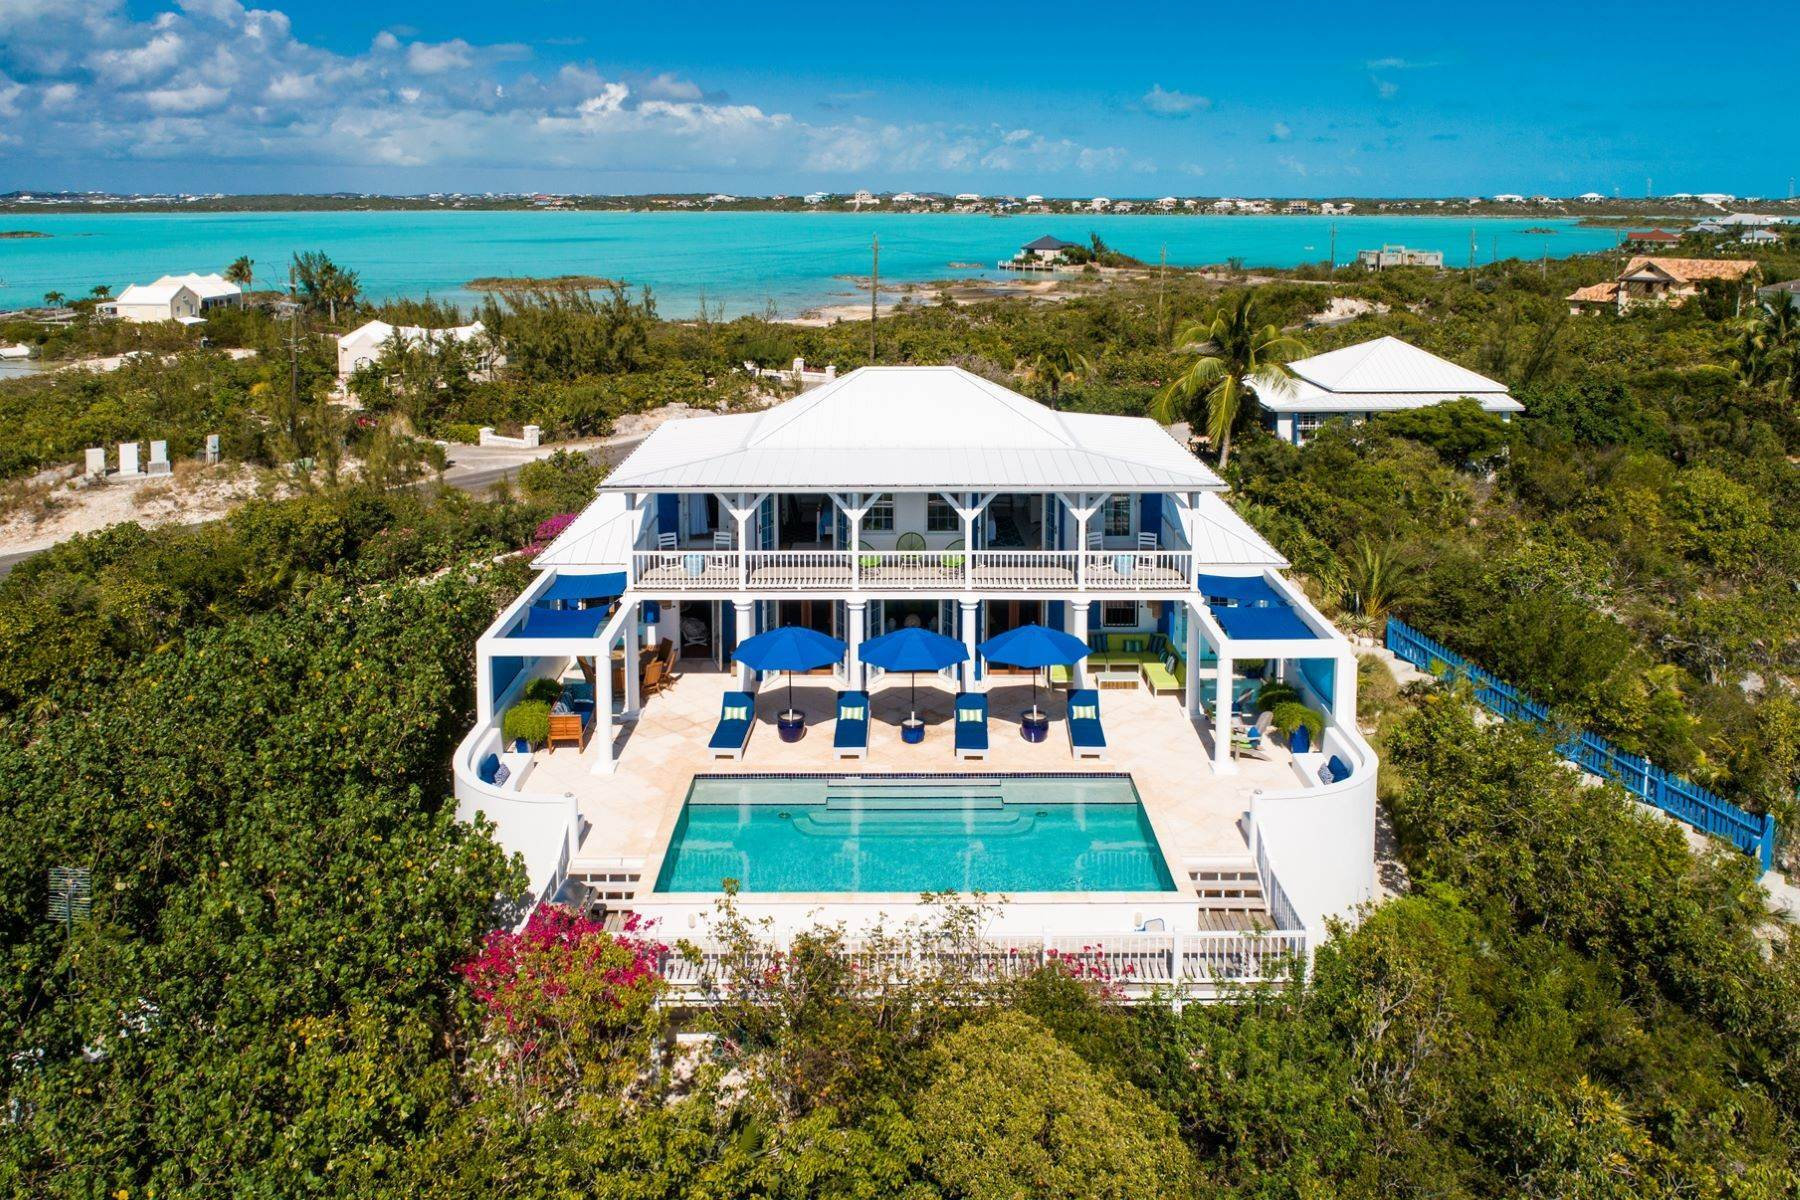 Single Family Homes for Sale at Bamboo House Beachfront Taylor Bay, Providenciales TCI Turks And Caicos Islands